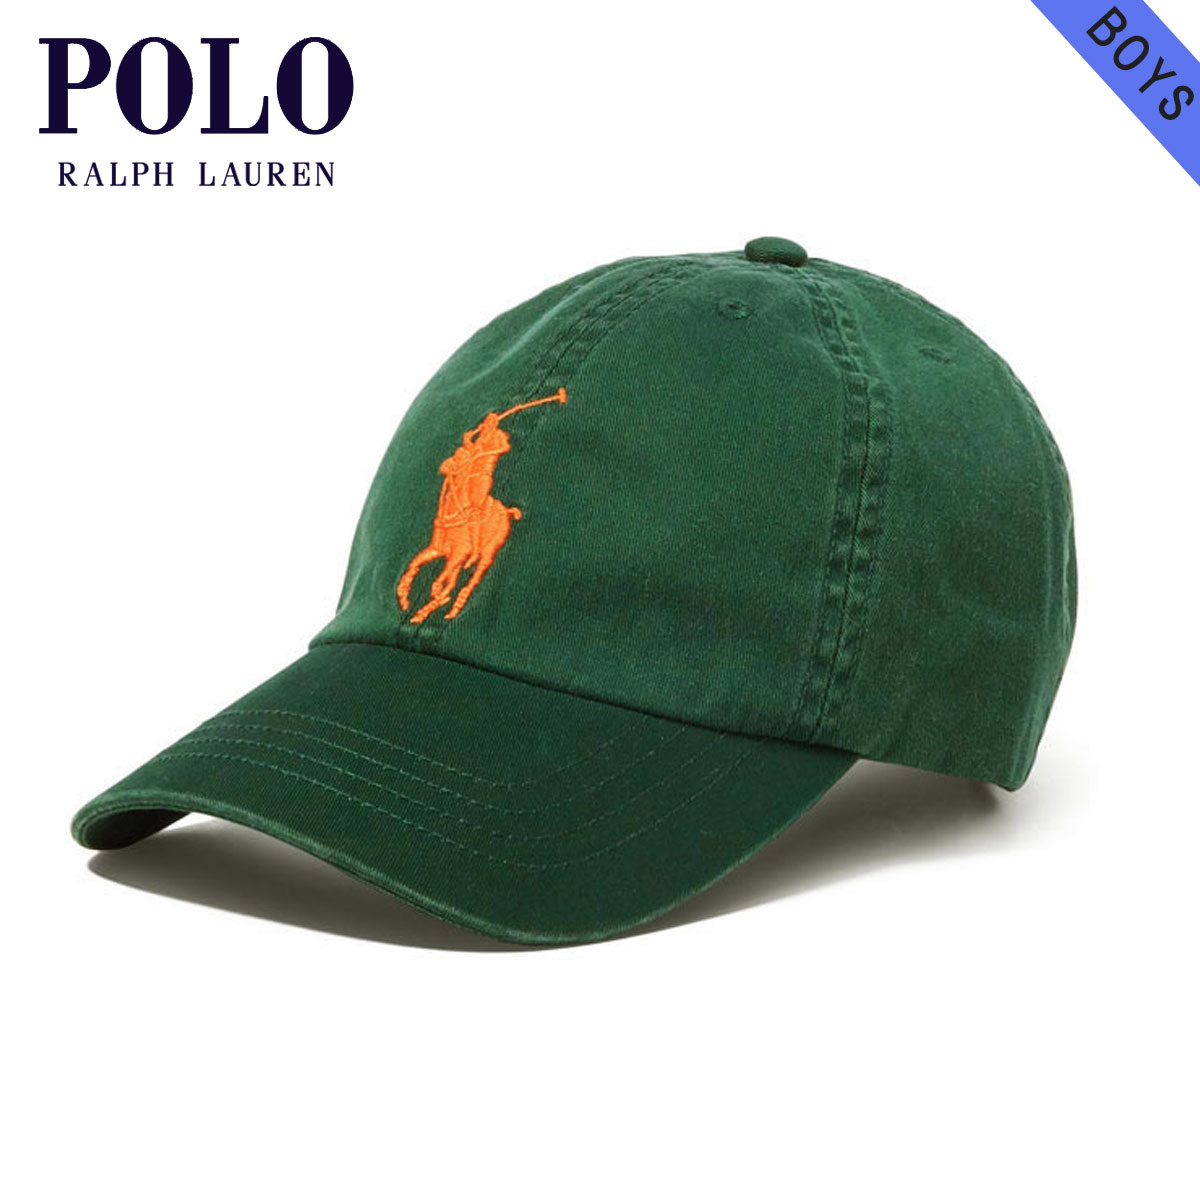 1873bd28 Polo Ralph Lauren kids POLO RALPH LAUREN CHILDREN regular article children's  clothes Boys hat cap BIG ...